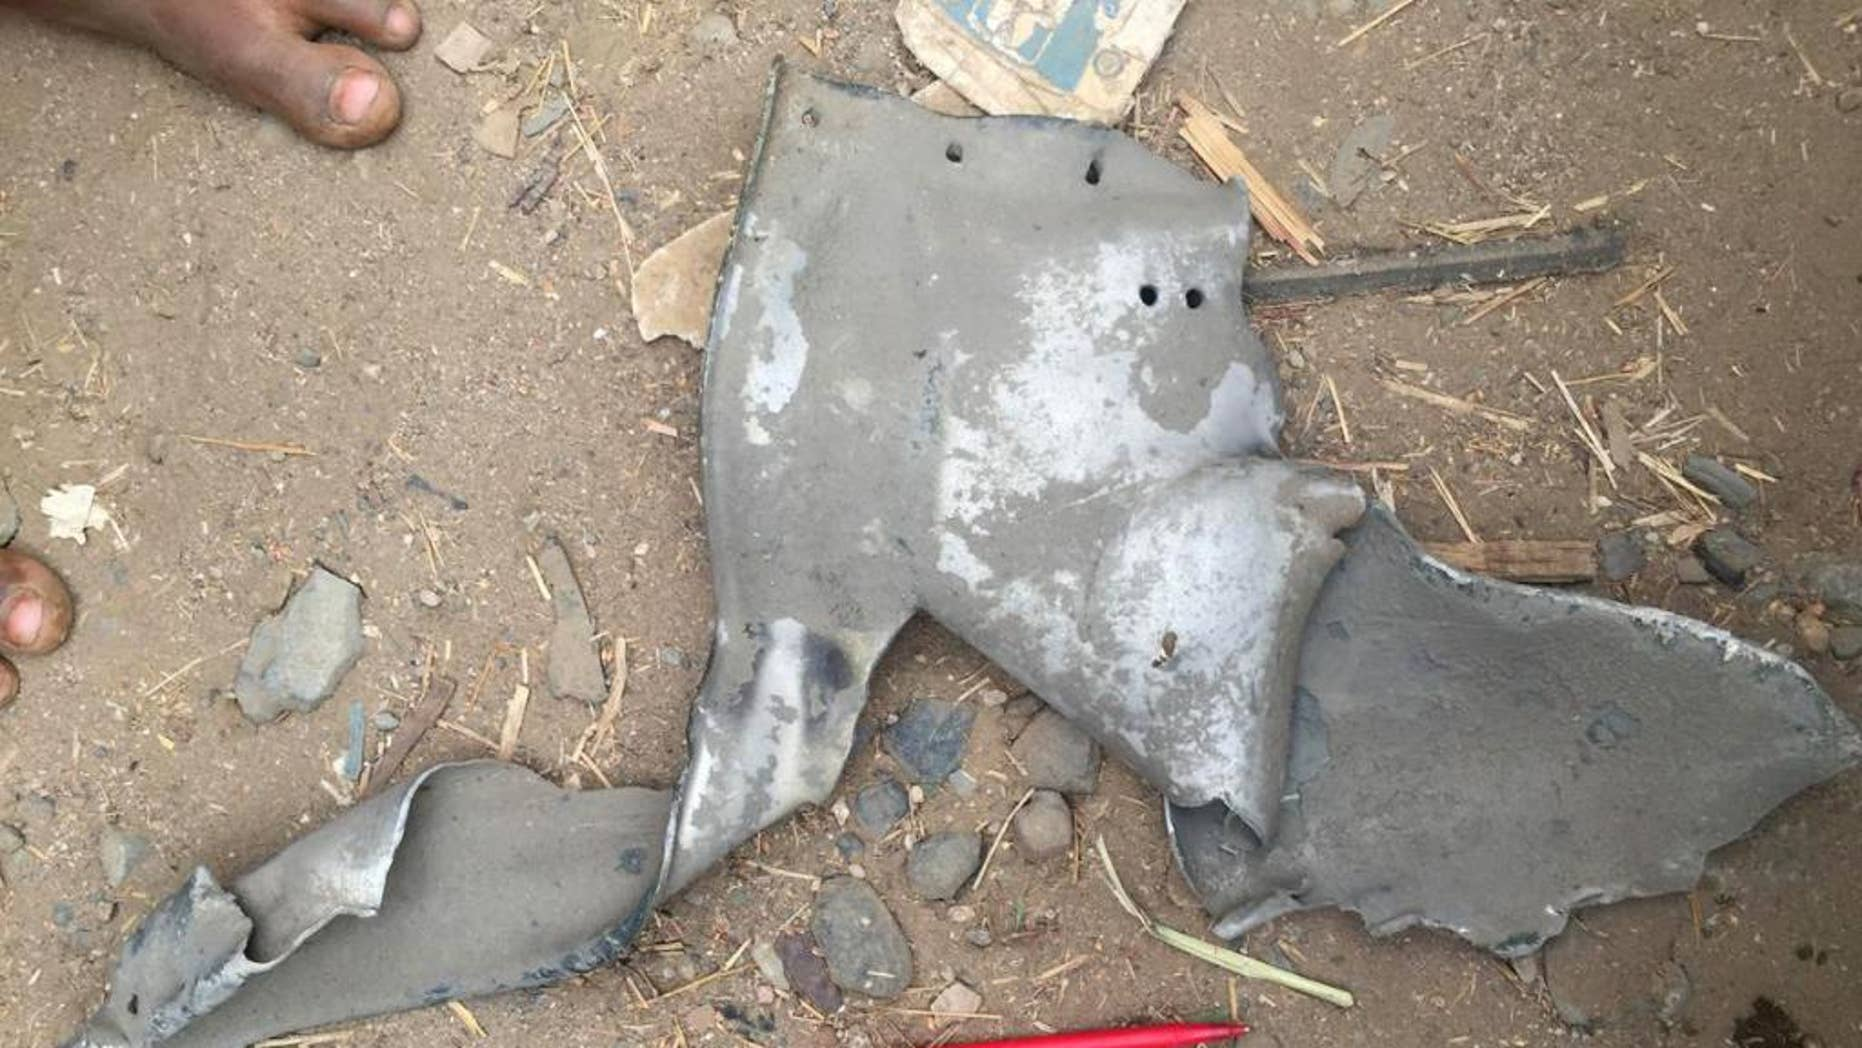 This image released by Human Rights Watch shows remnants of a bomb, found at the scene of a March 15, 2016 airstrike on Mastaba, Yemen. Human Rights Watch said Thursday, April 7, 2016 that their investigators found fragments of a GBU-31 satellite-guided bomb at the site of the market bombing in the northwestern town of Mastaba. The group said the bomb, as well as its guidance equipment, is made by the U.S. (Human Rights Watch via AP)